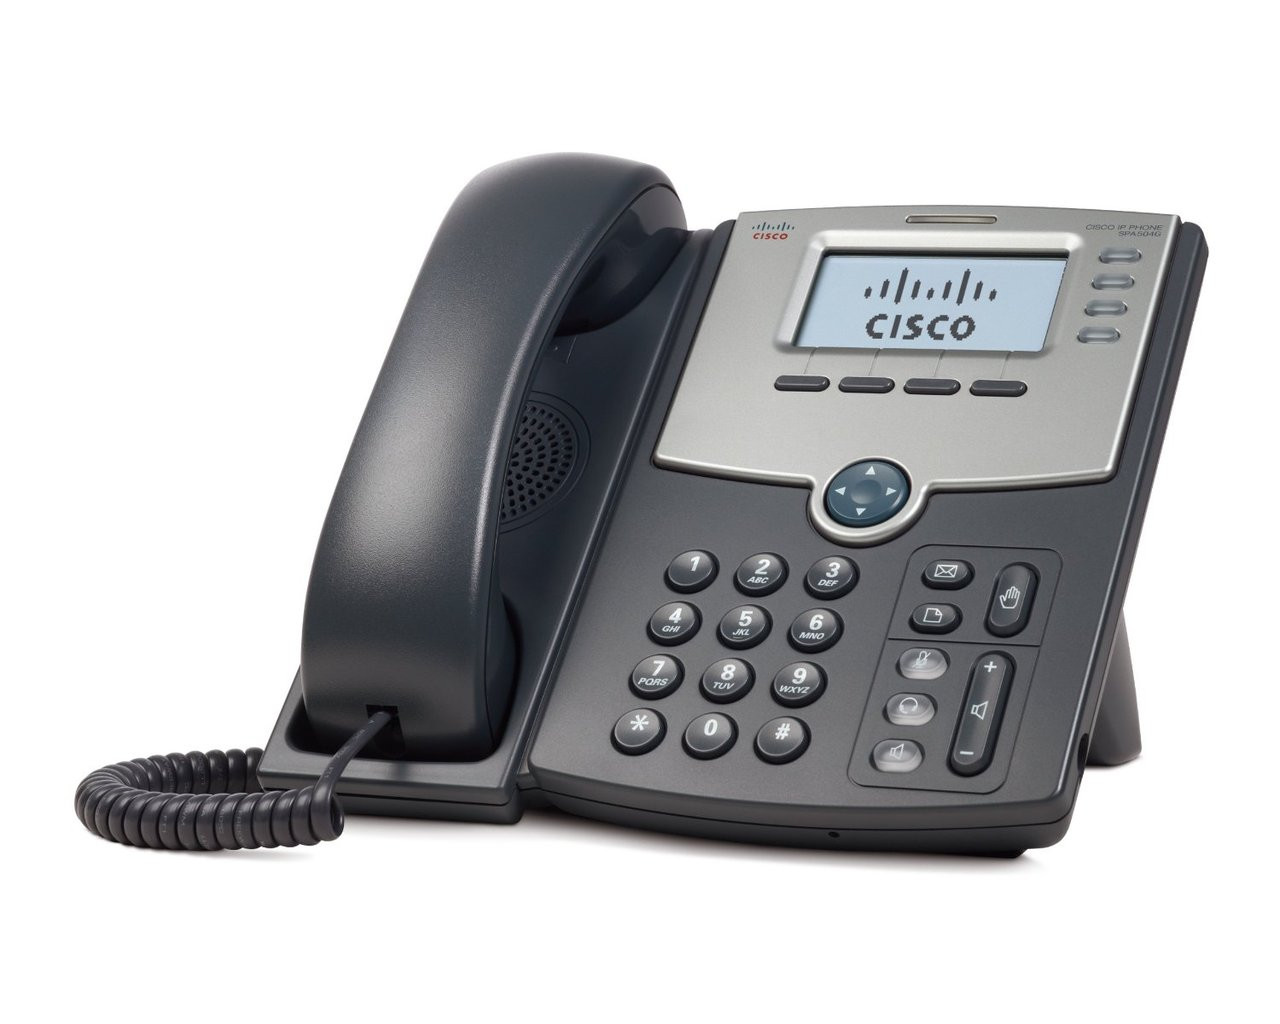 Cisco Spa504g 4 Line Ip Phone With 2 Port Switch Poe And Lcd Home Blog Product Highlights Network For Camera Review Loading Zoom